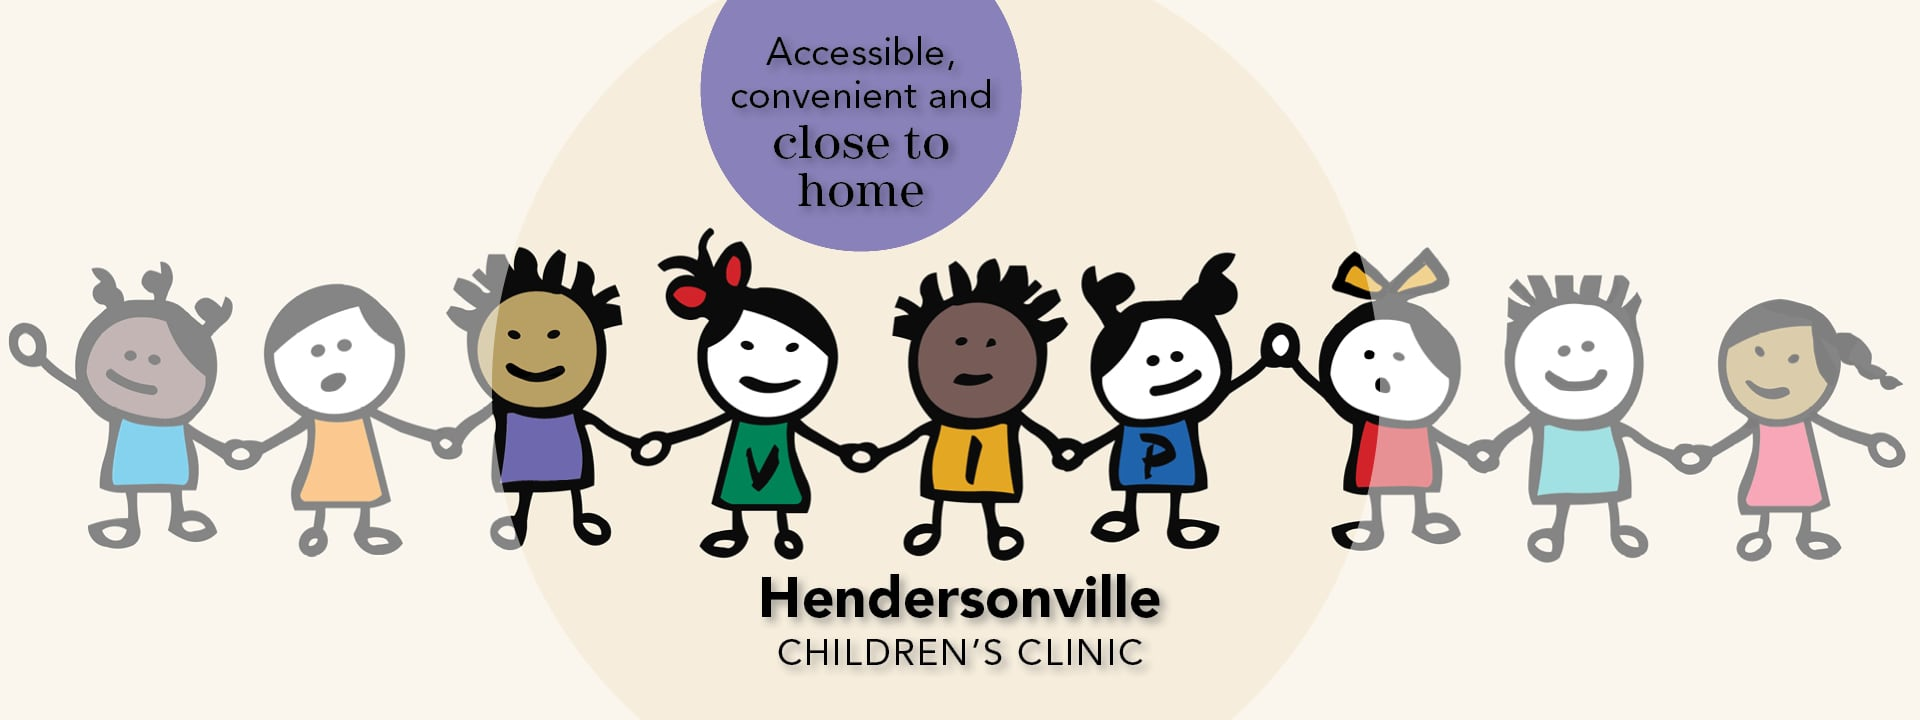 VIP MidSouth Children's Clinic Hendersonville TN